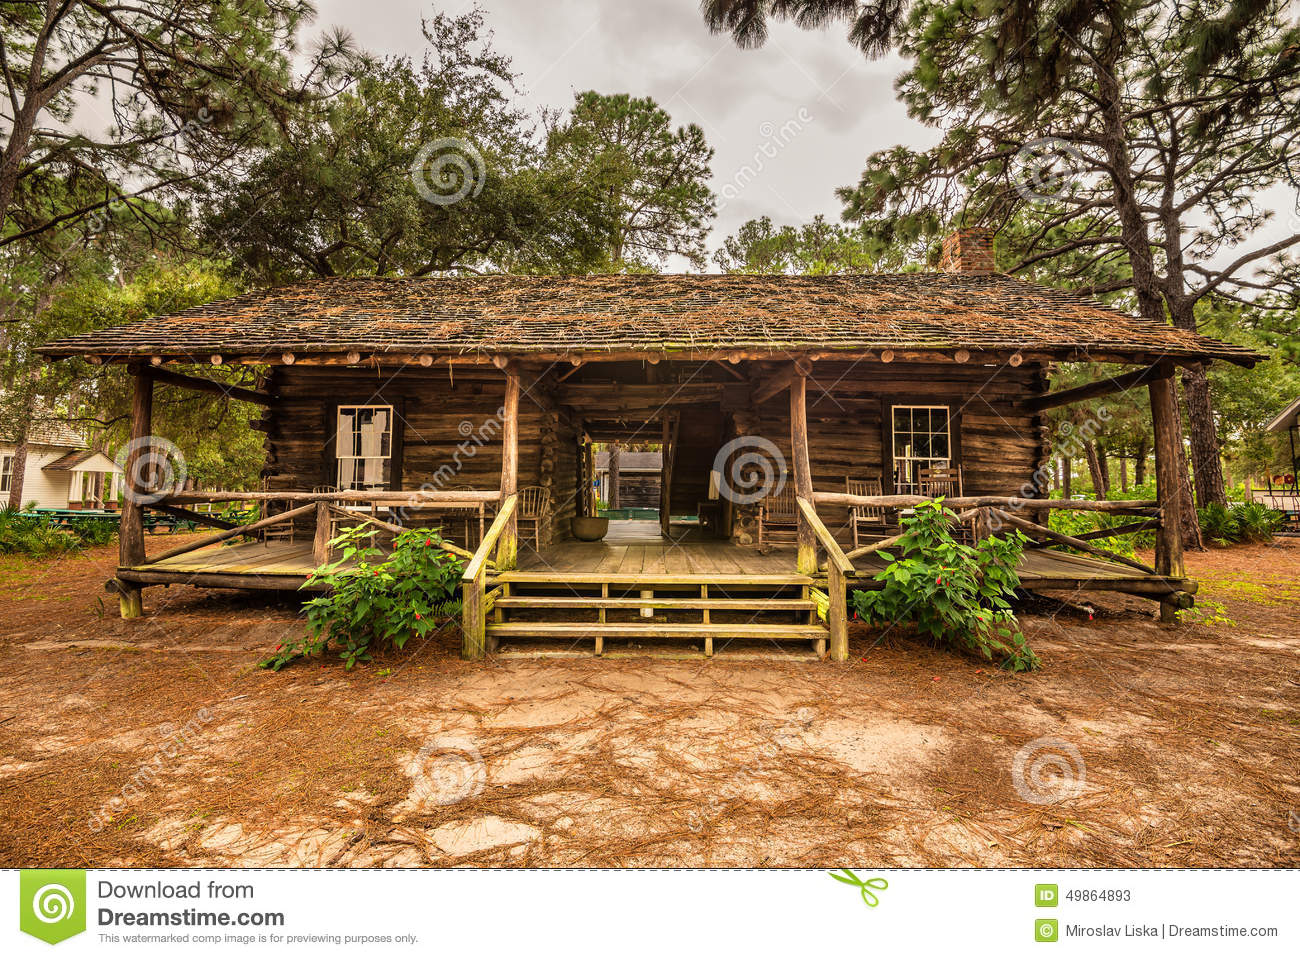 Pinellas county heritage village editorial stock photo for Florida cracker house plans wrap around porch